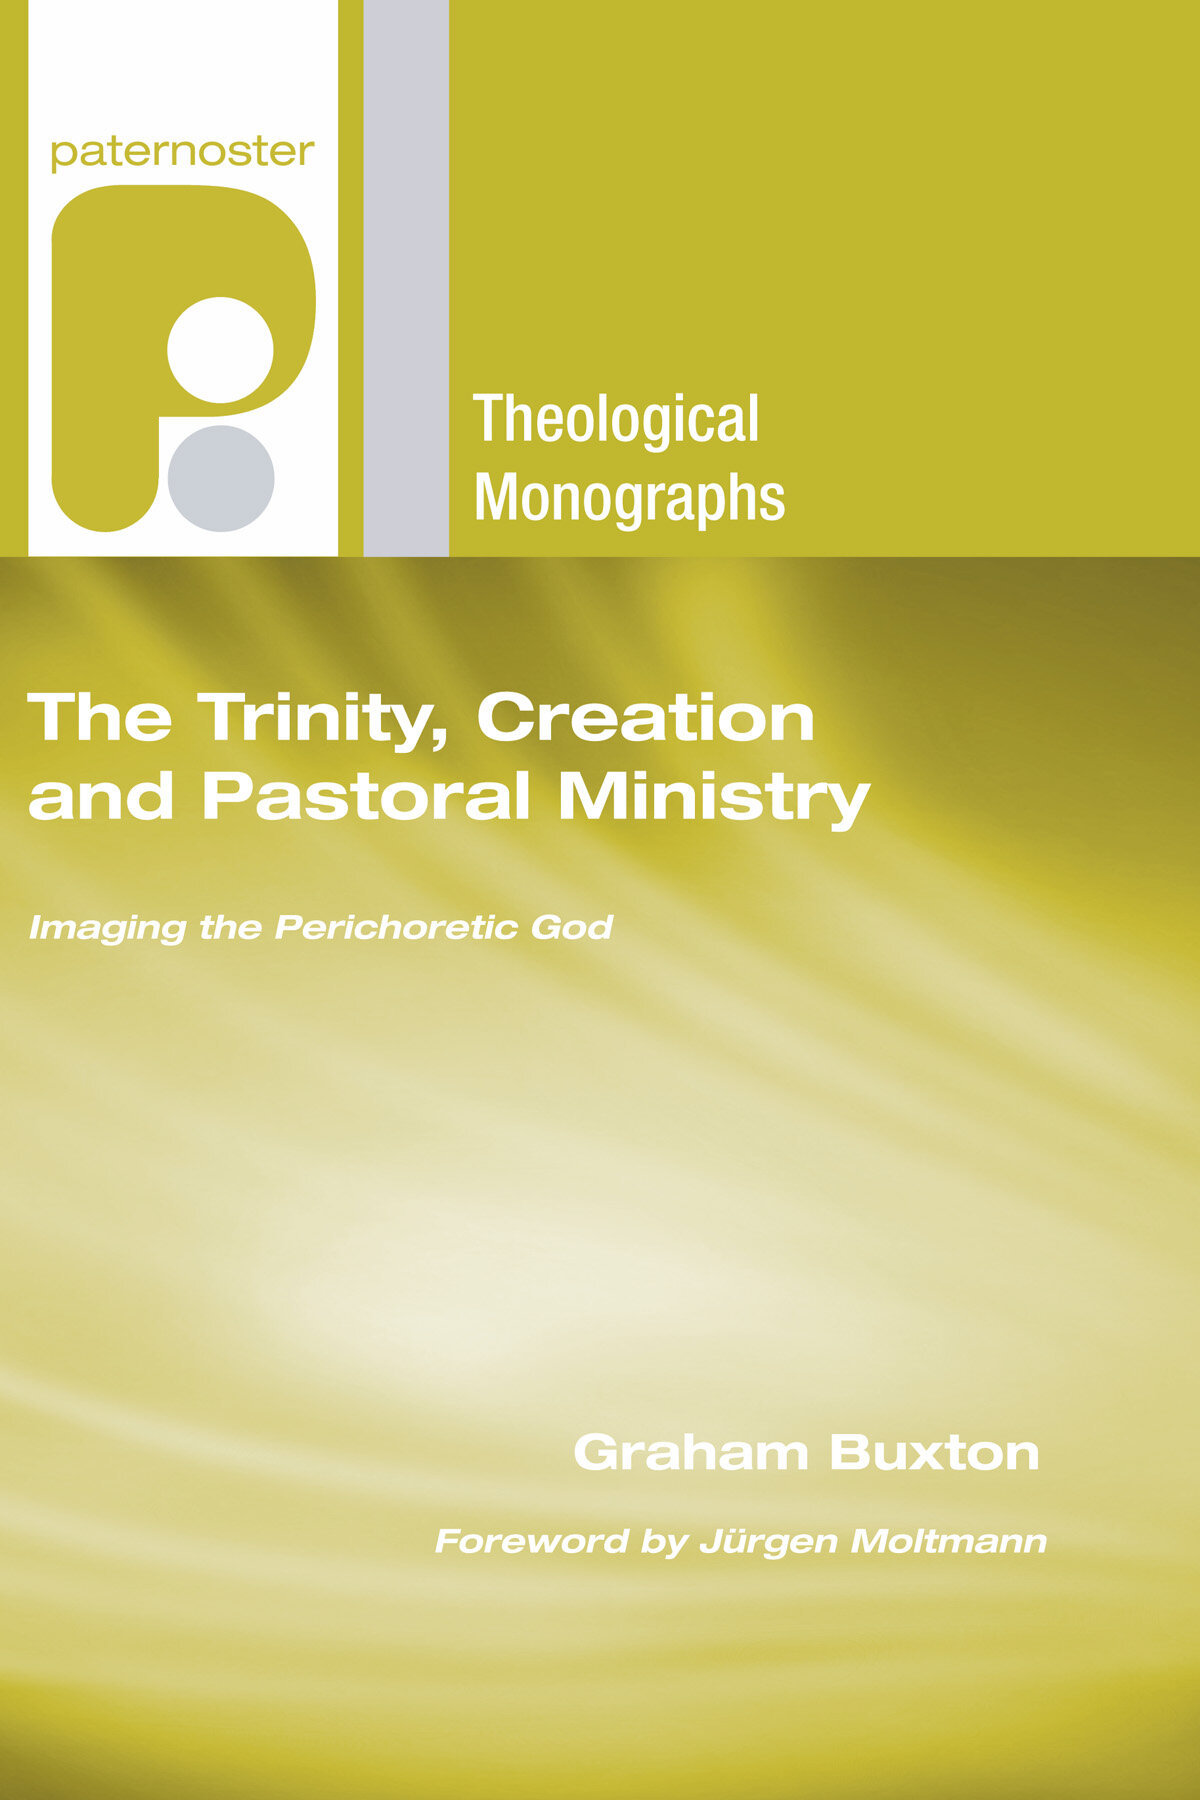 The Trinity, Creation, and Pastoral Ministry